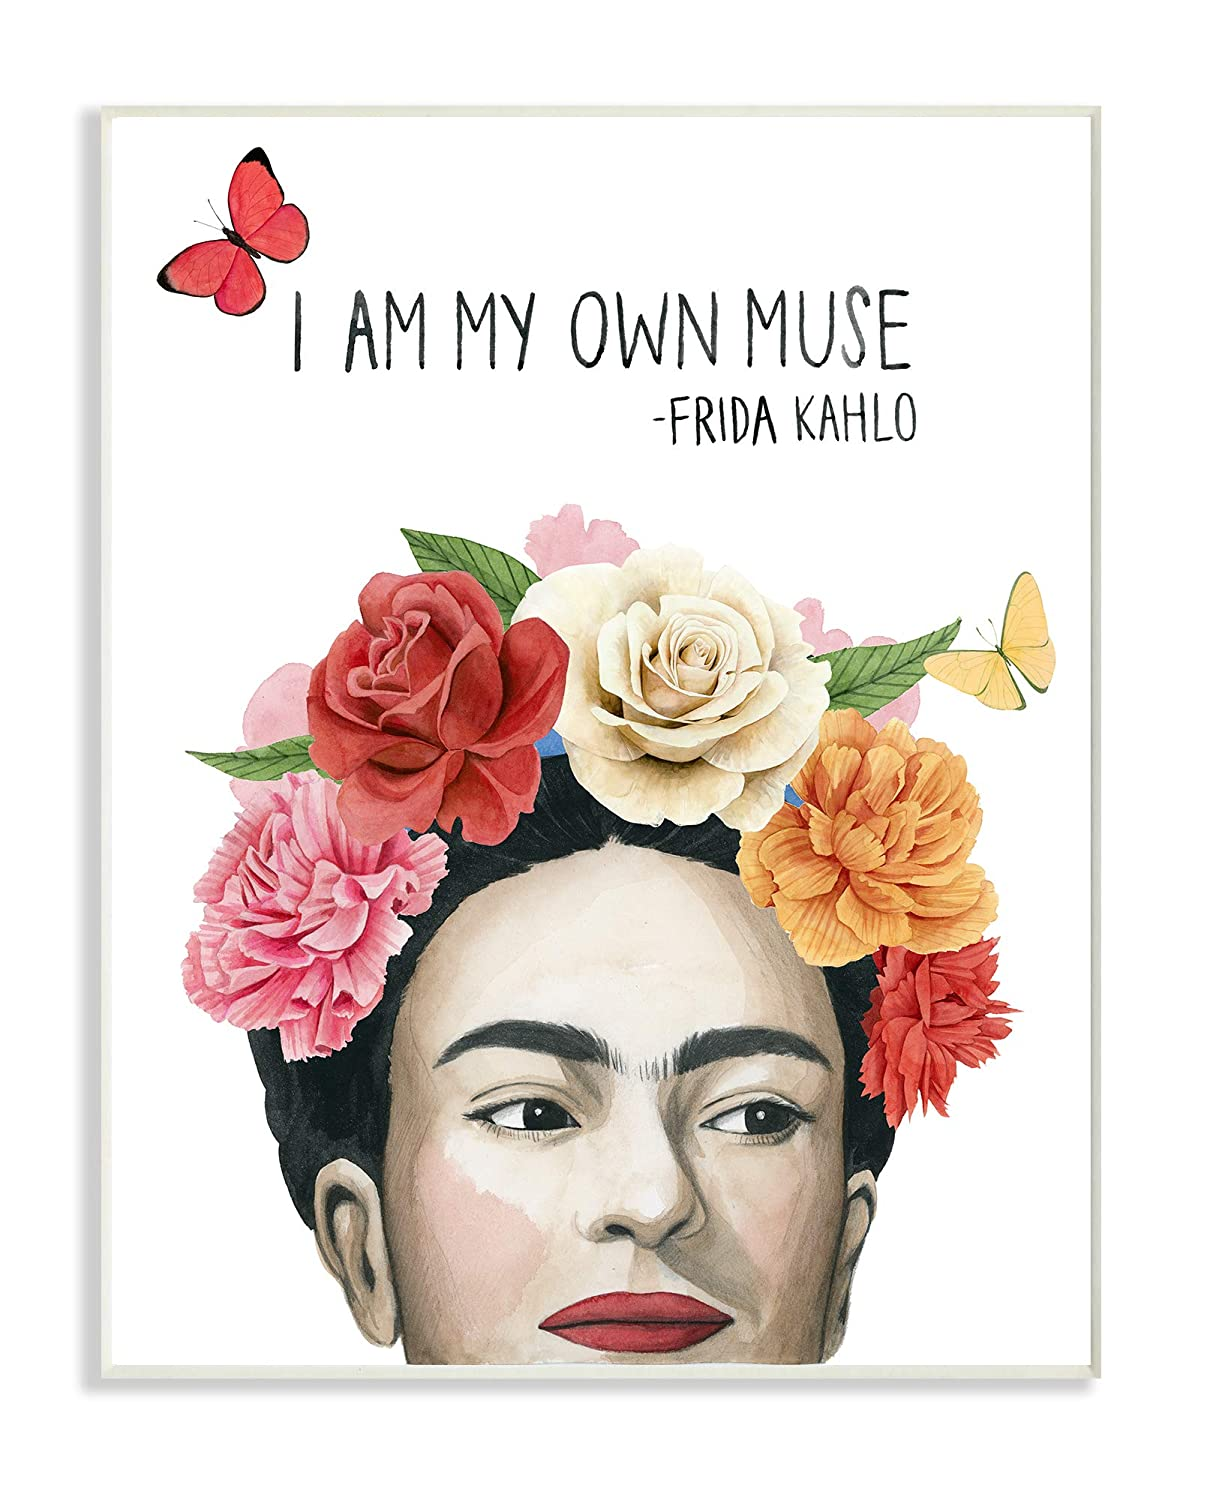 The Stupell Home Decor Pink and Coral My Own Muse Frida's Flowers Framed Giclee Texturized Art, 11 x 14, Multi-Color